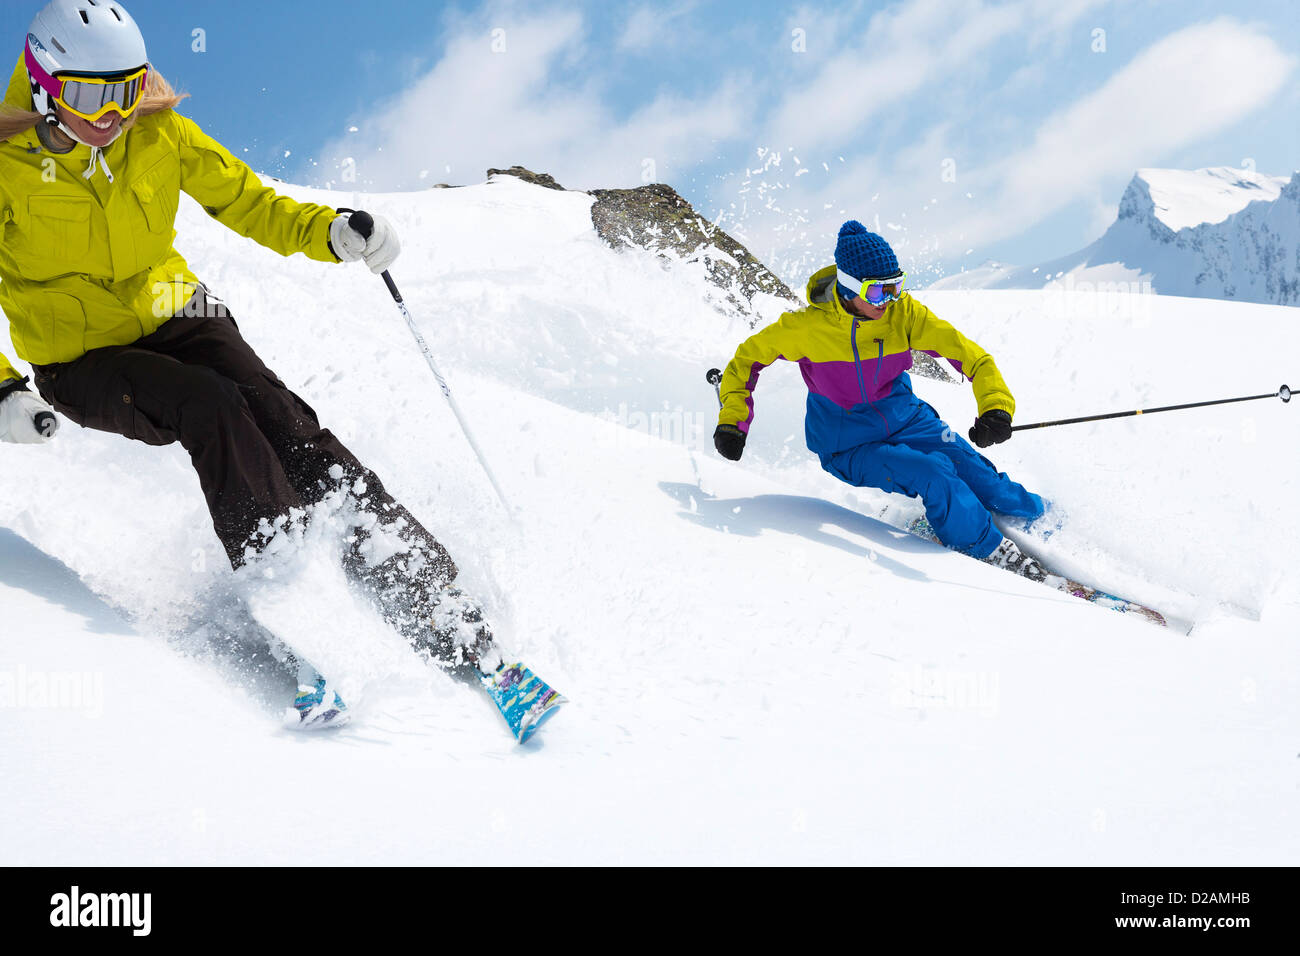 Skiers on snowy slope - Stock Image